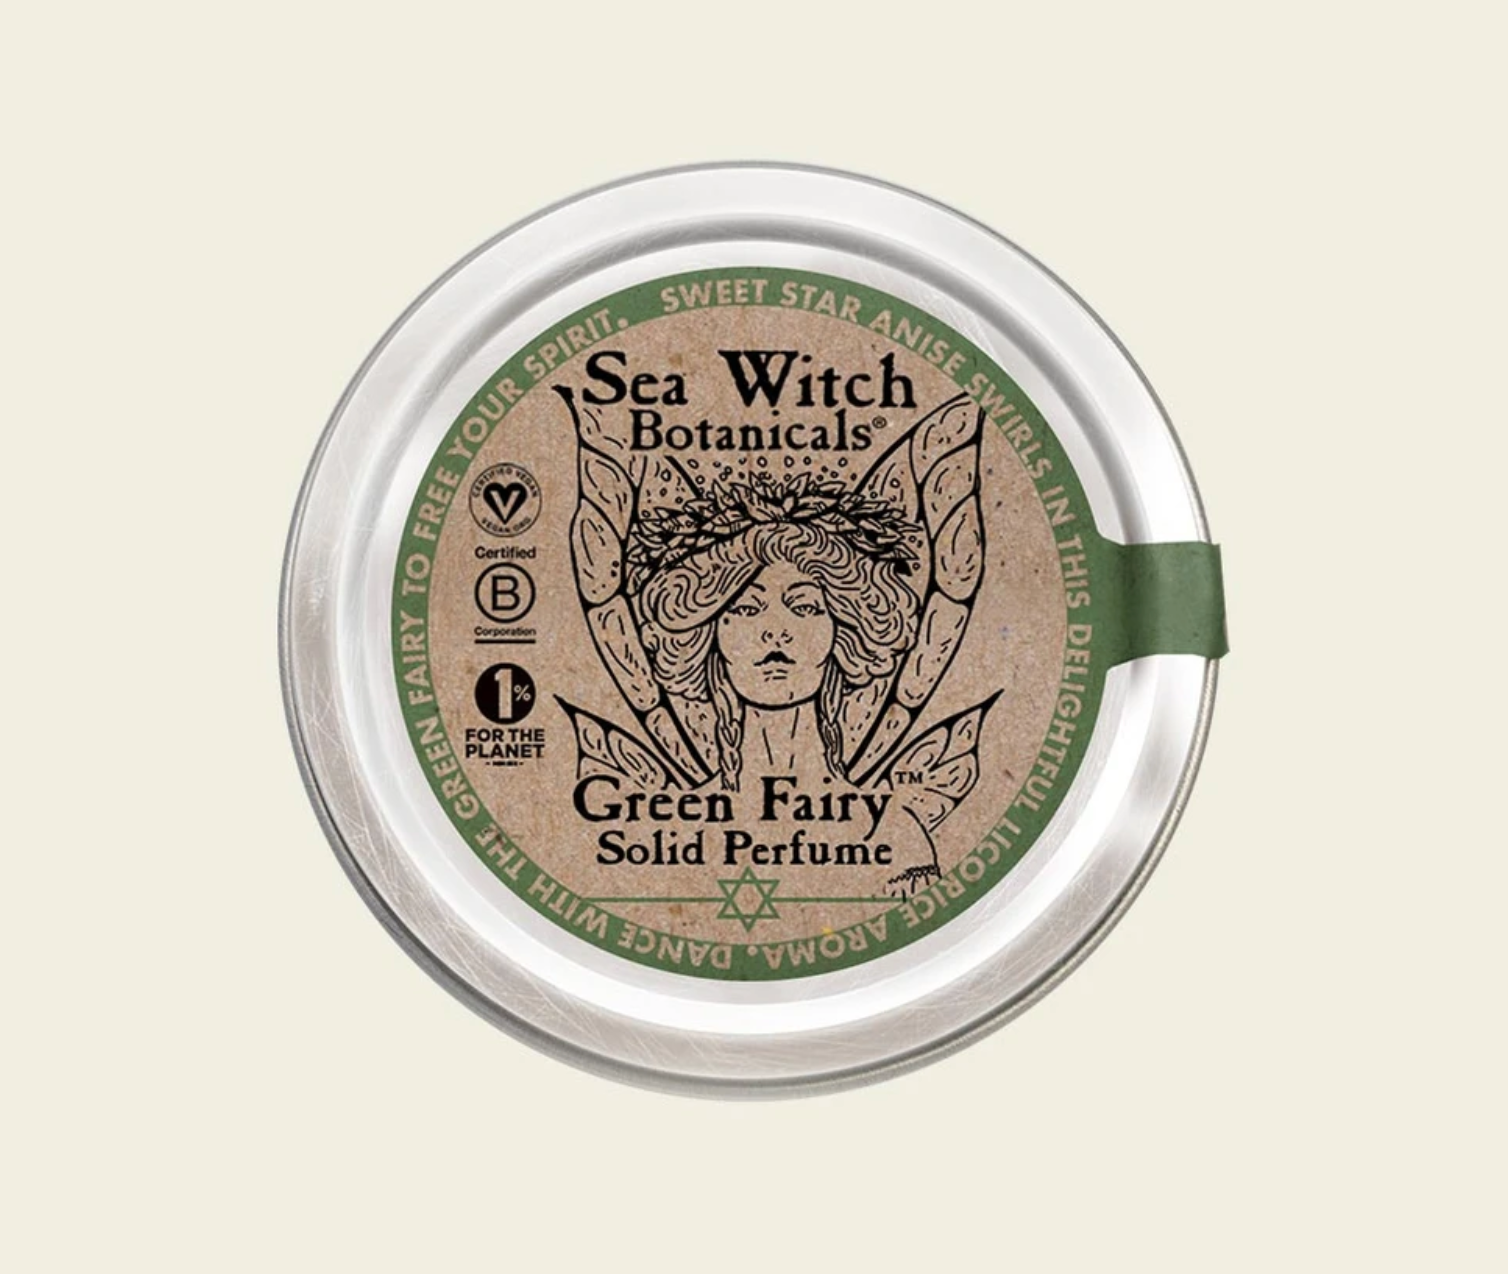 Sea Witch Botanicals Solid Perfume